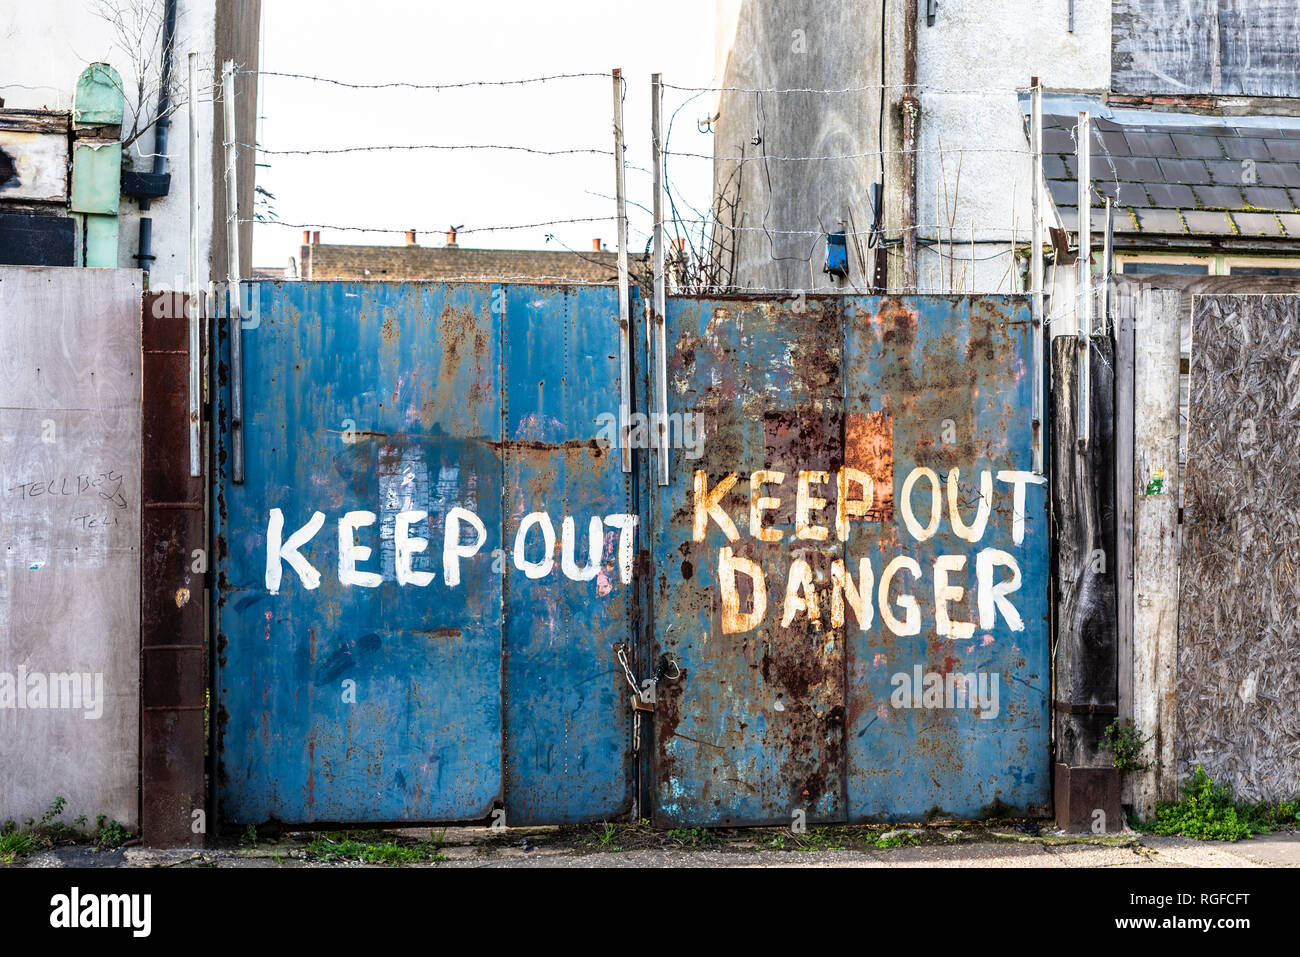 Old decaying building with warnings on gate to keep out. Danger keep out rough painted notice on rusting gates with barbed wire. Urban decay - Stock Image